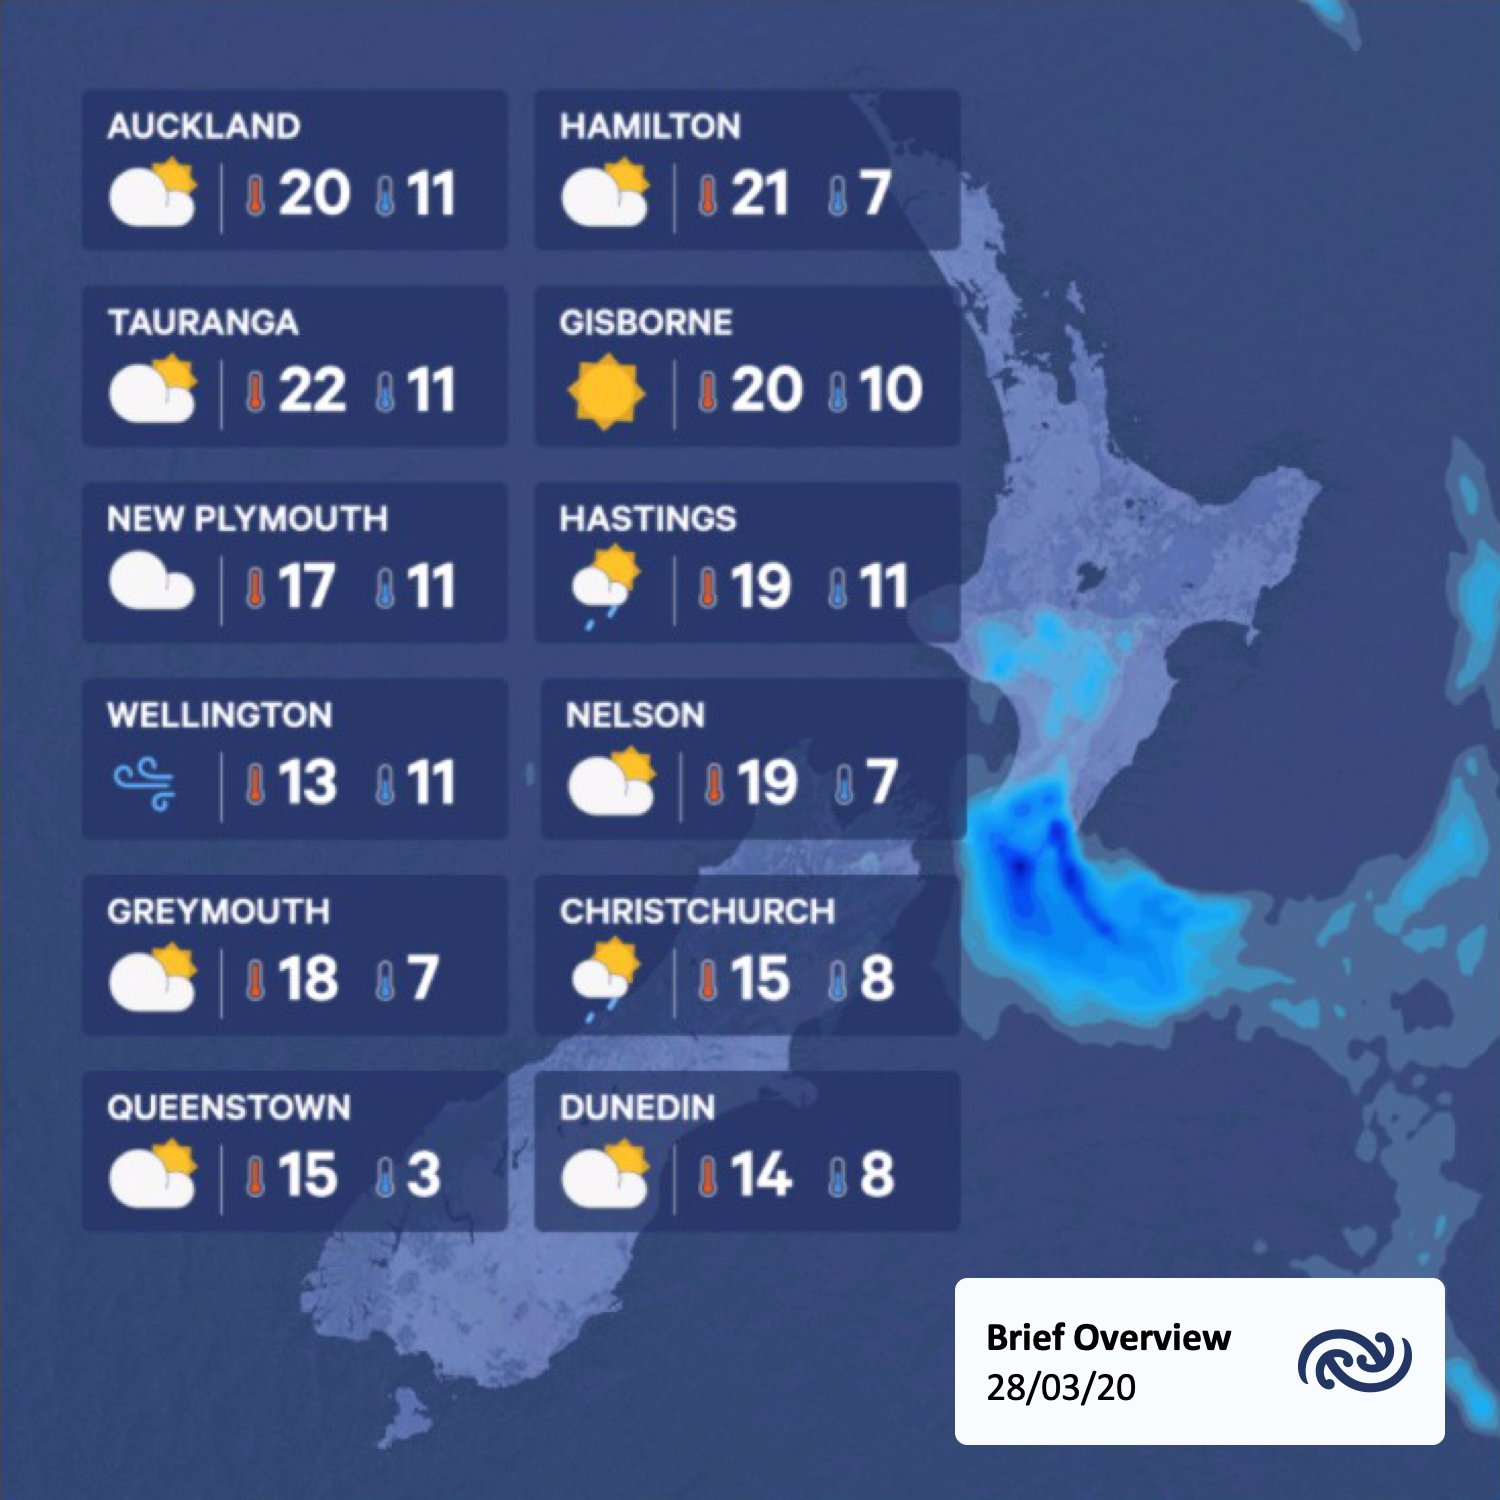 A brief look ahead at tomorrow's weather... A bit of a lolly scramble! Full details at bit.ly/metservicenz   ^Tui https://t.co/Evx0LCacf7